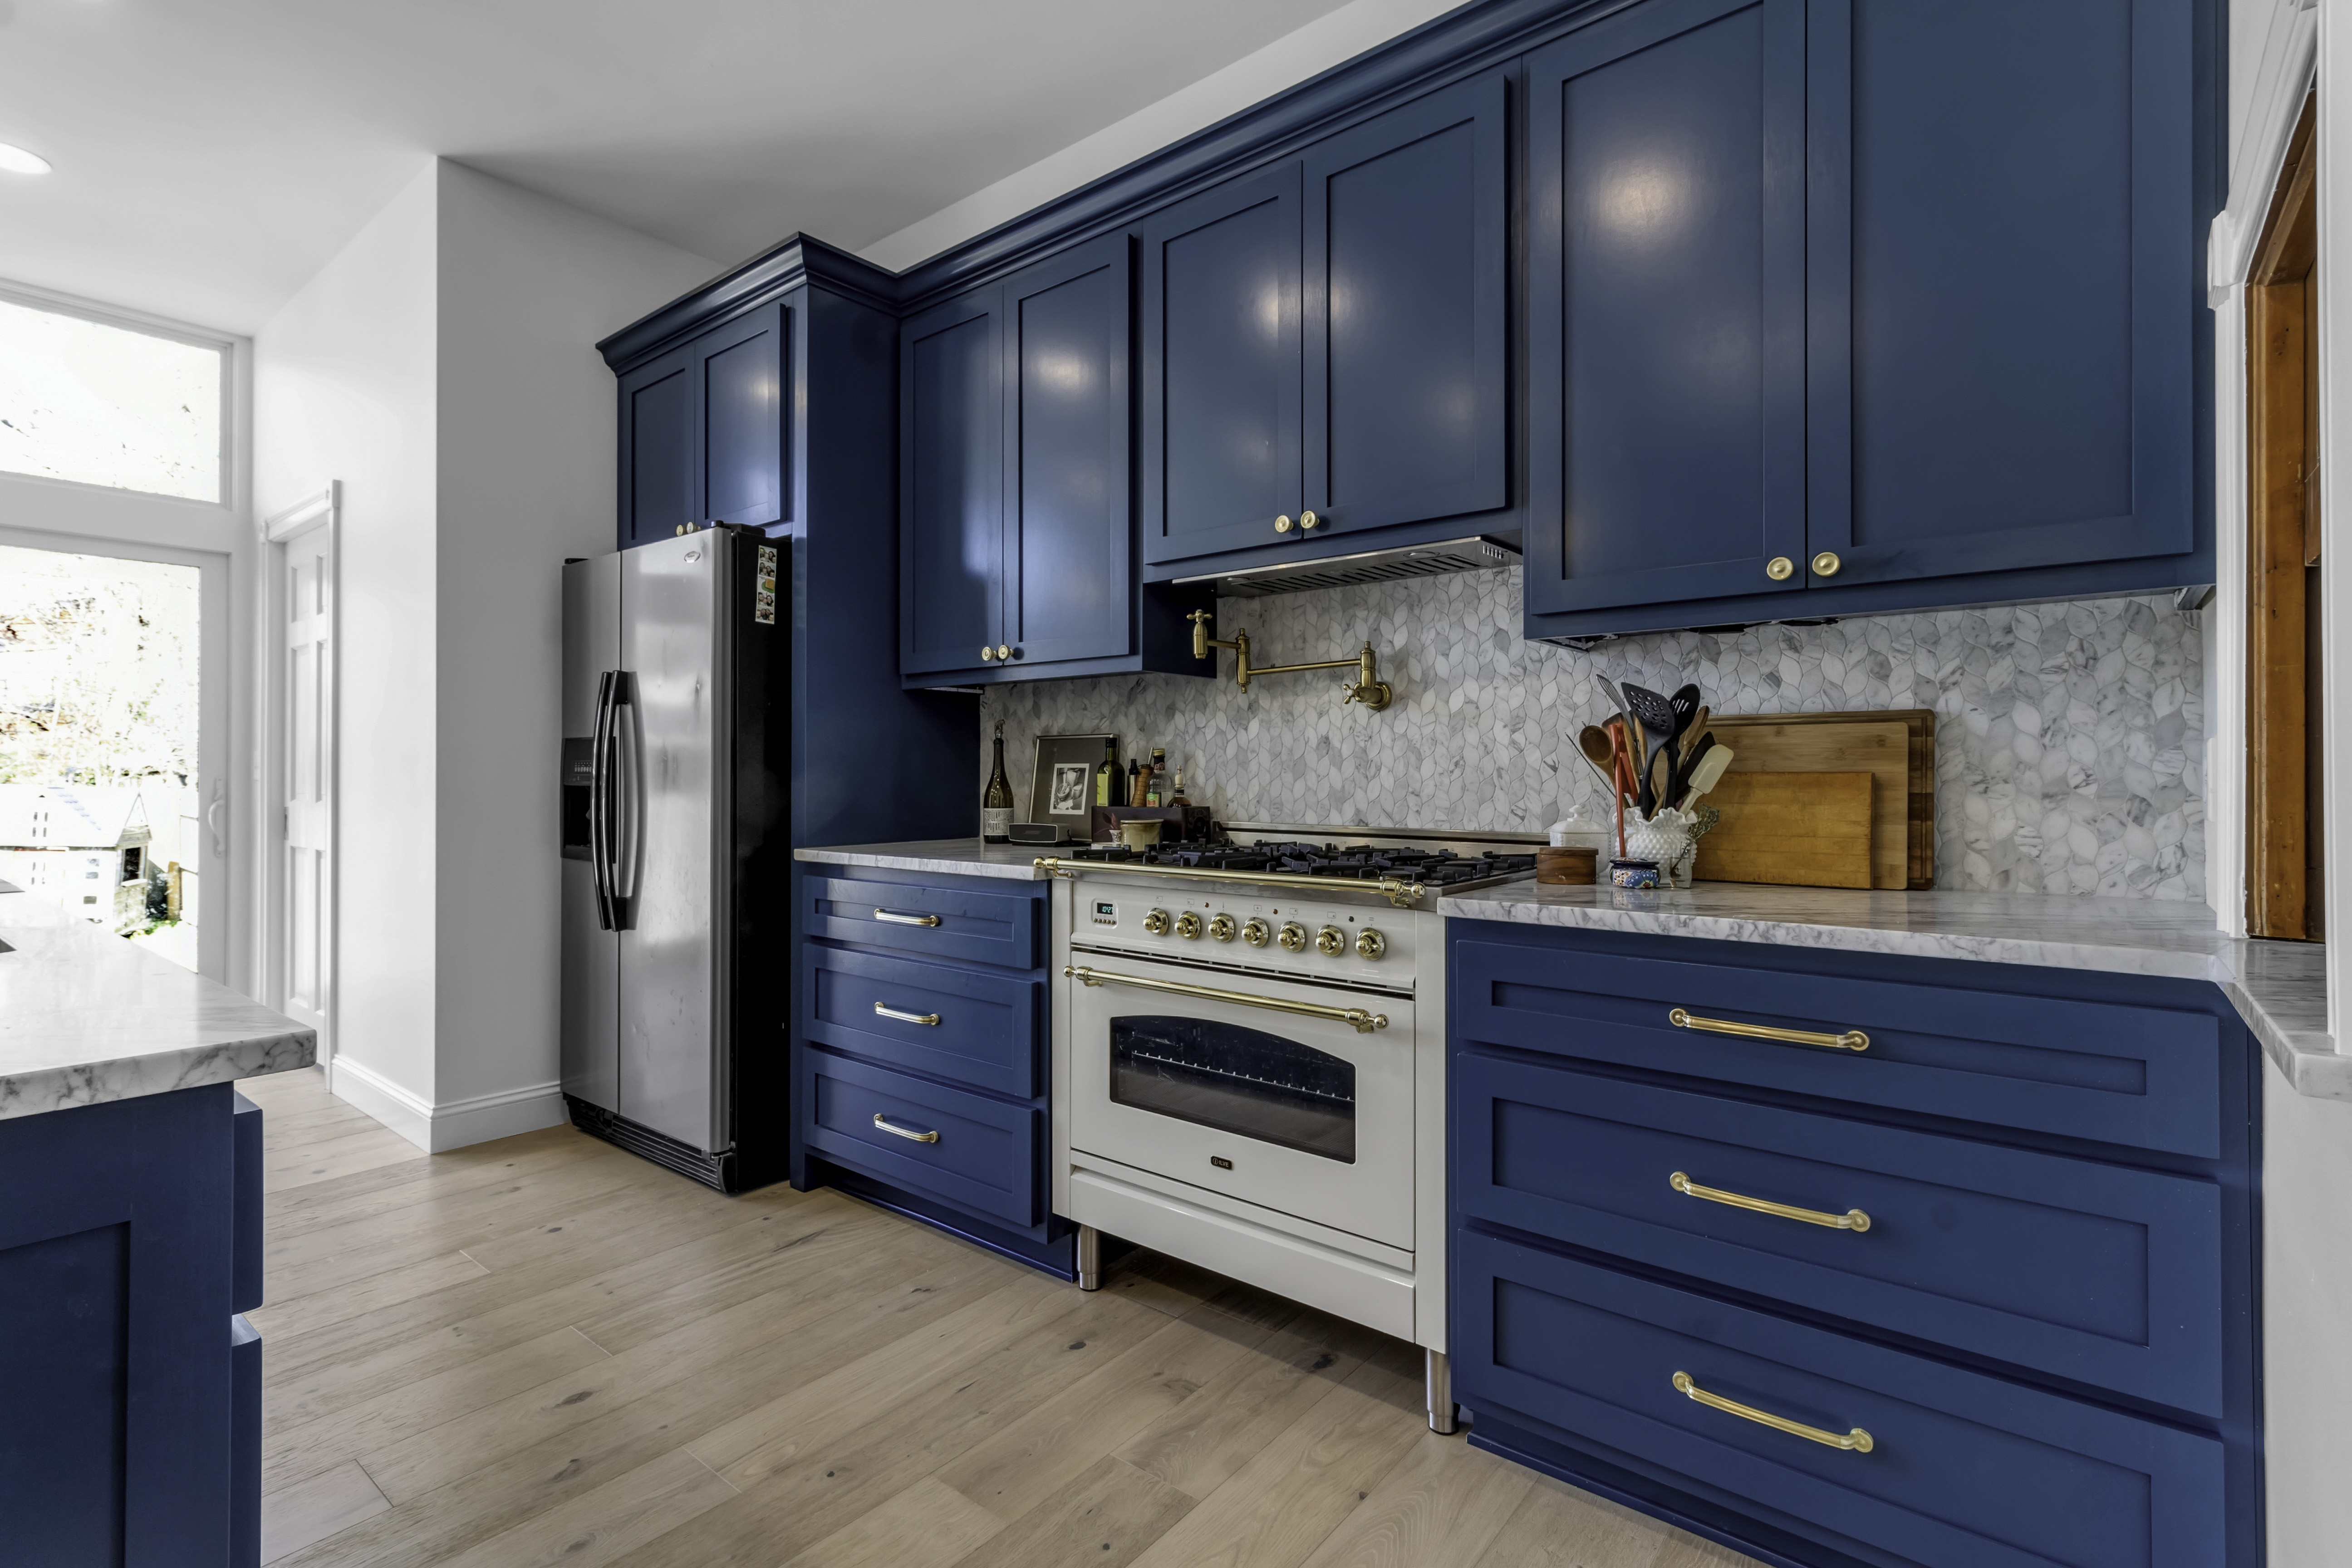 Kitchen remodel contractor wny